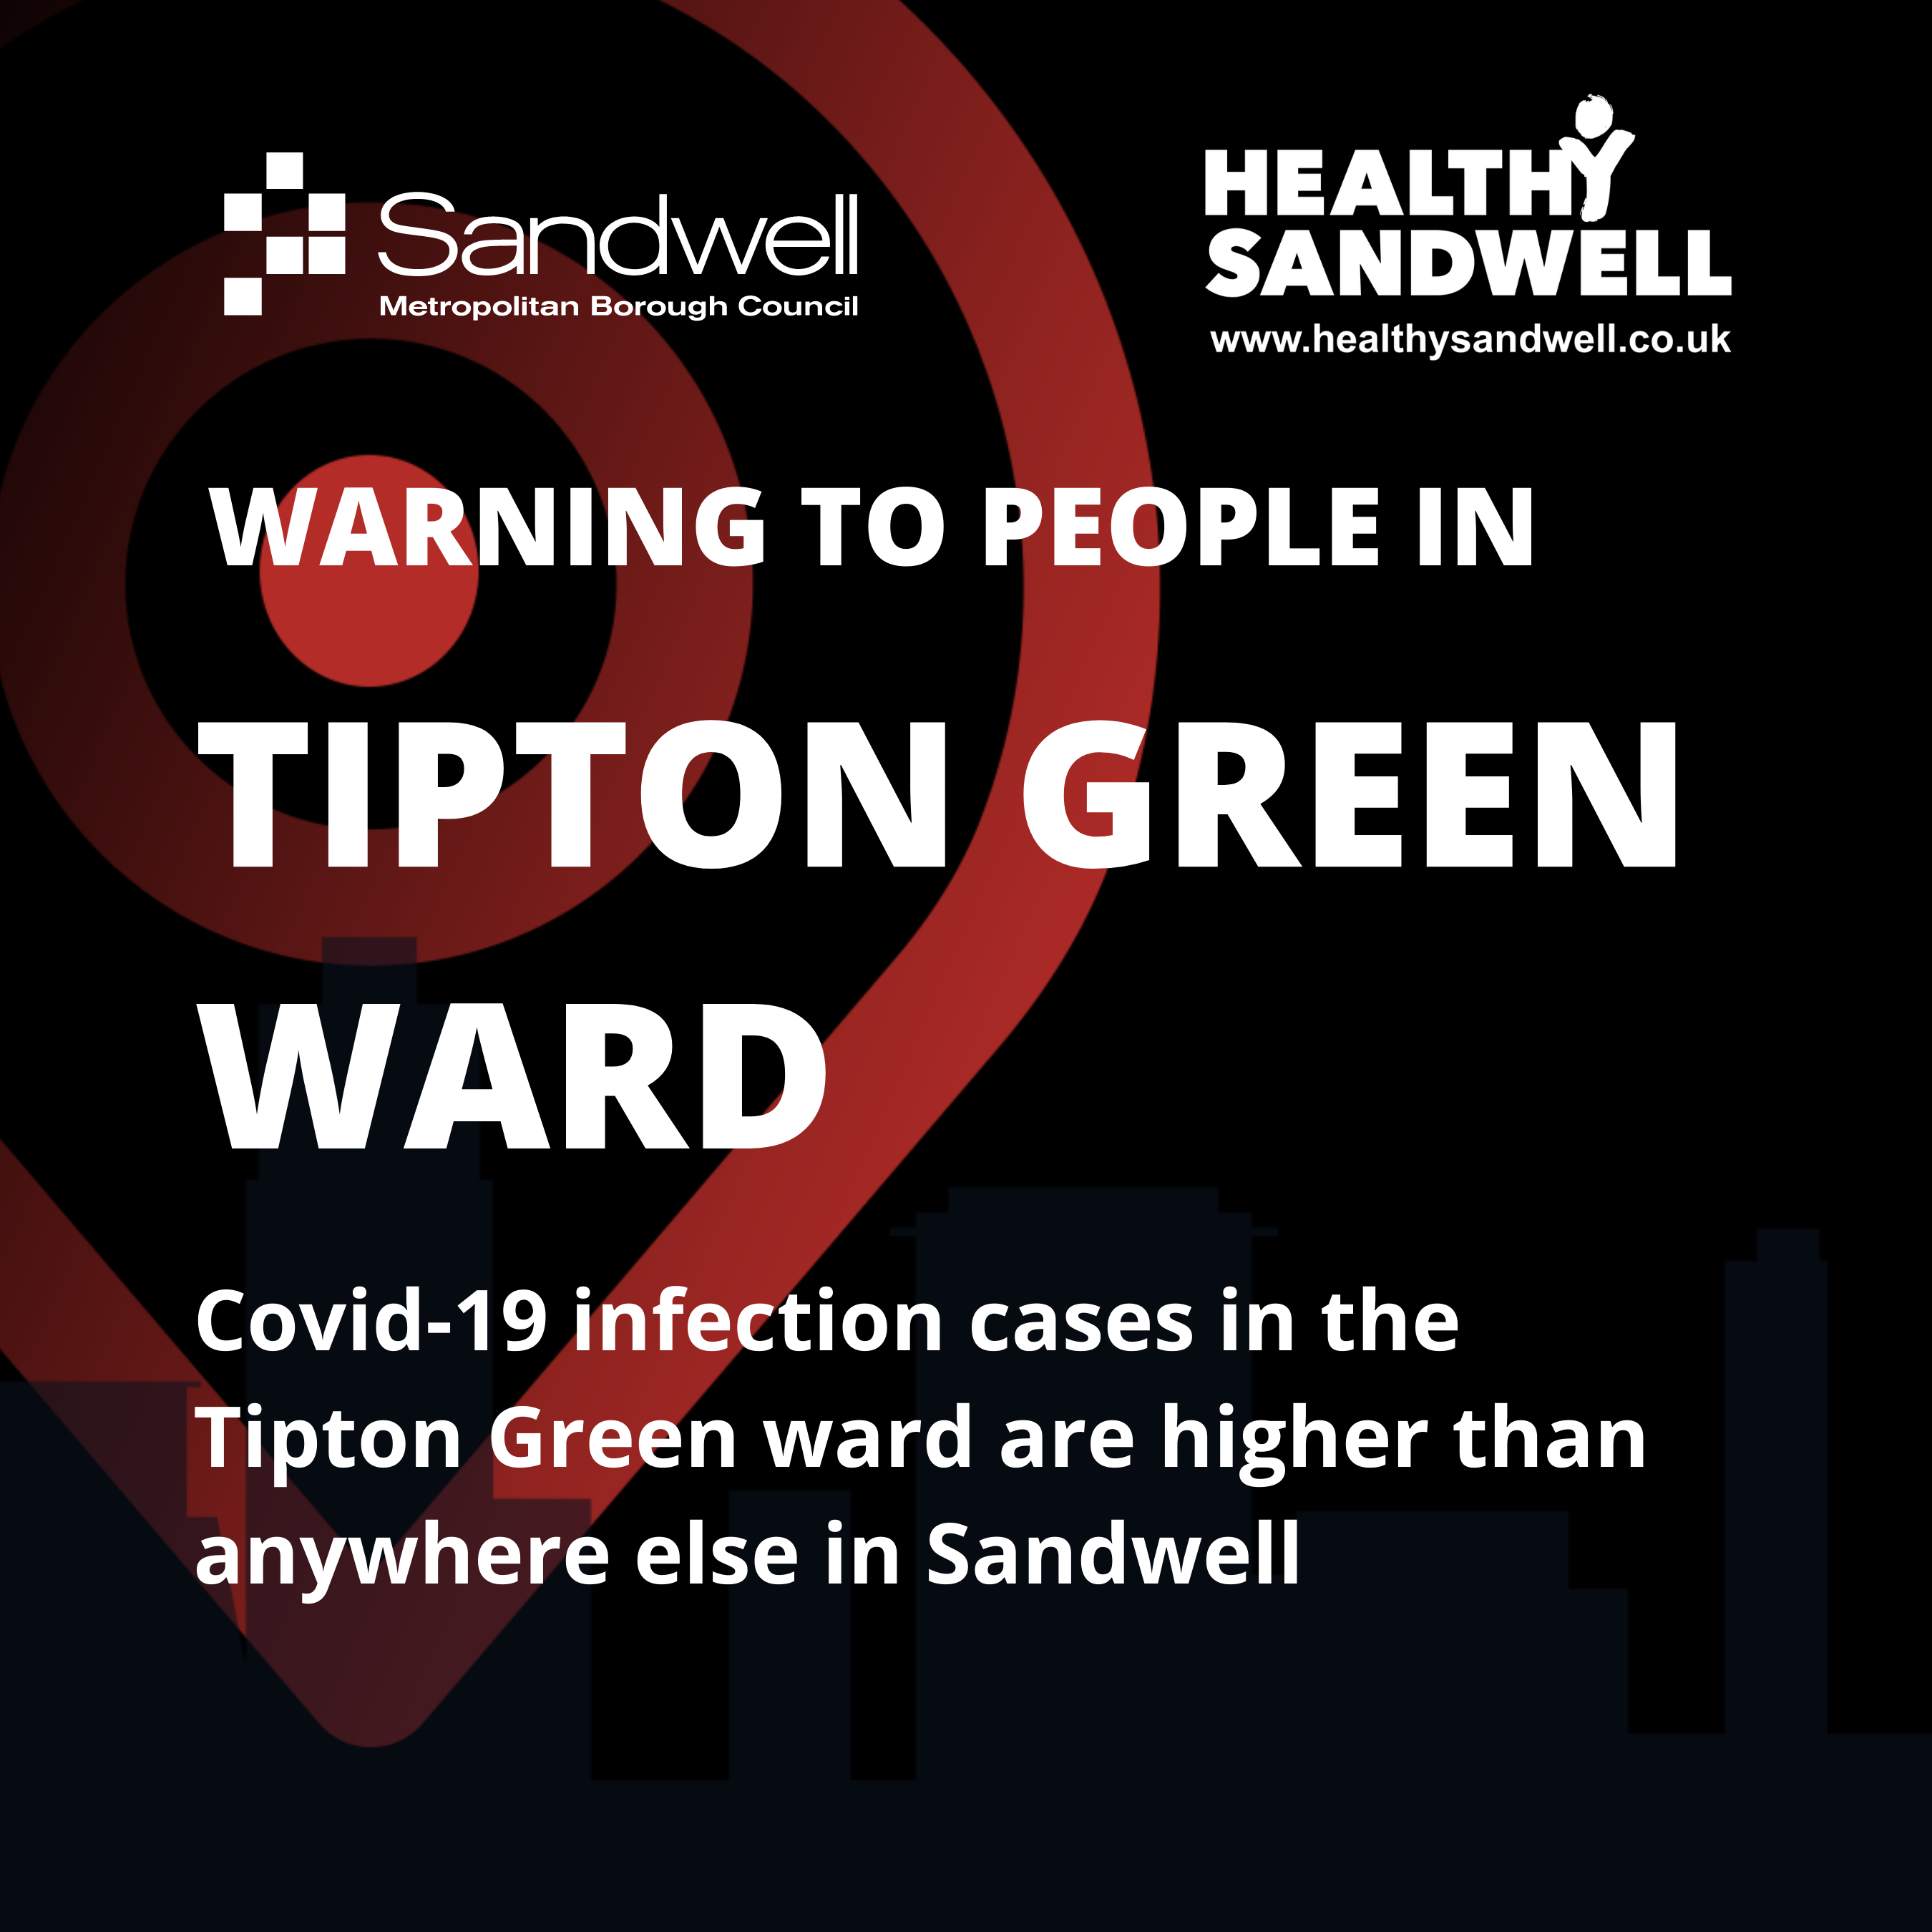 Warning to people in Tipton Green ward - Covid-19 rates are hight than anywhre else in Sandwell